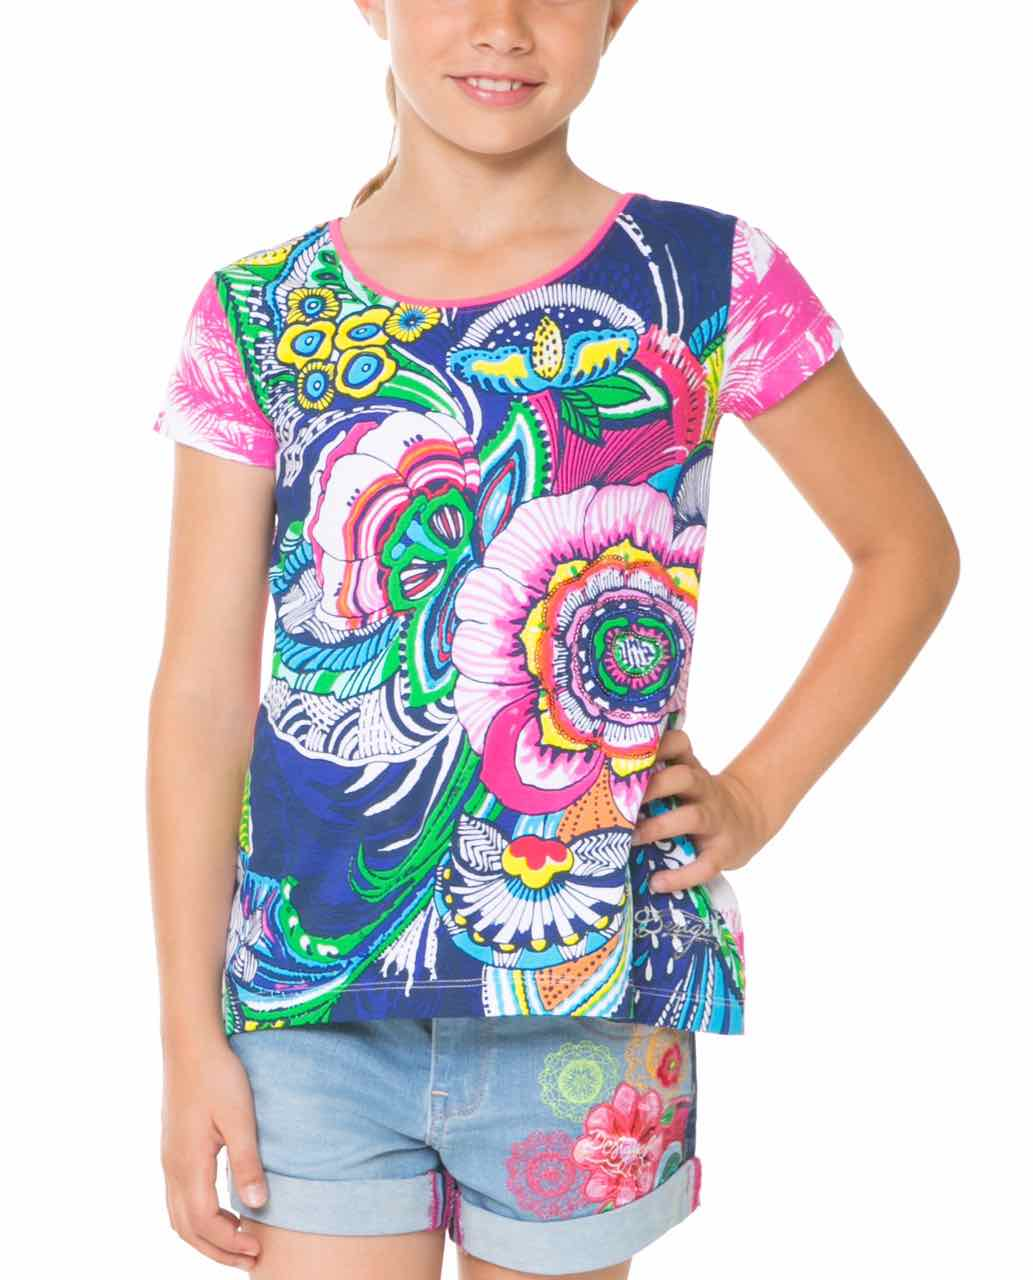 desigual girls t shirt delaware 61t30a6 canada. Black Bedroom Furniture Sets. Home Design Ideas